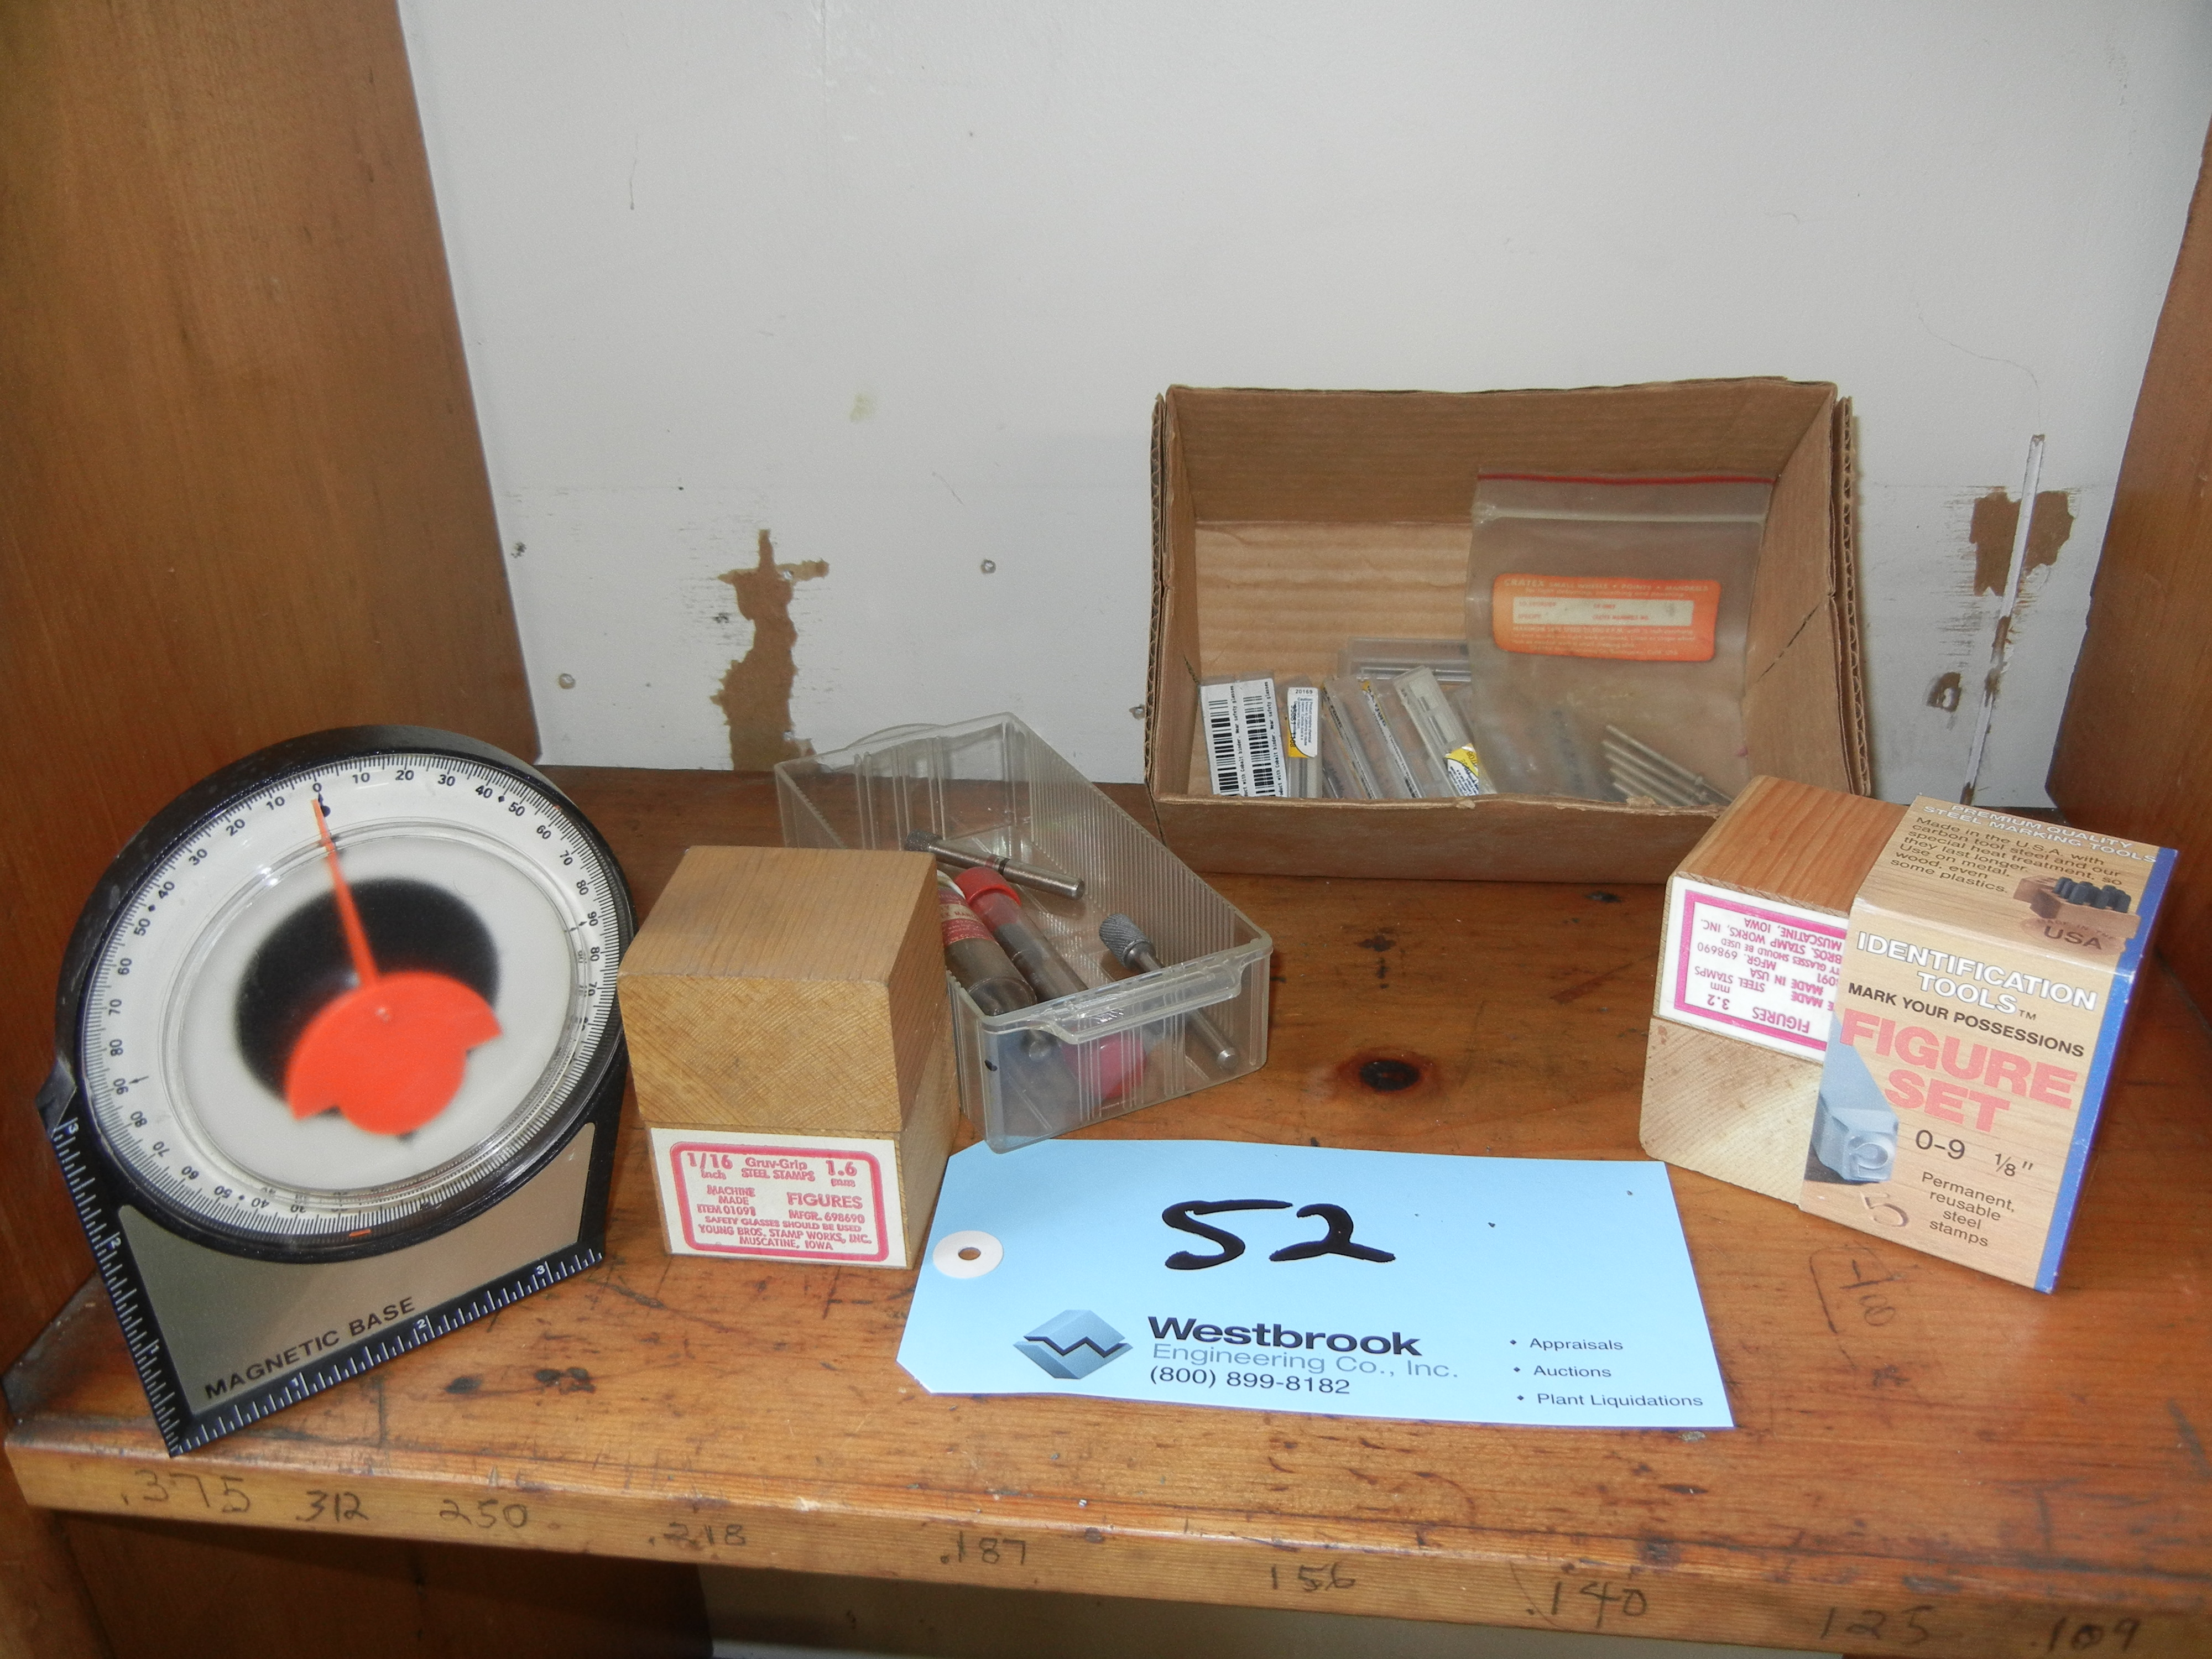 Number stamps, diamond mandrels and level